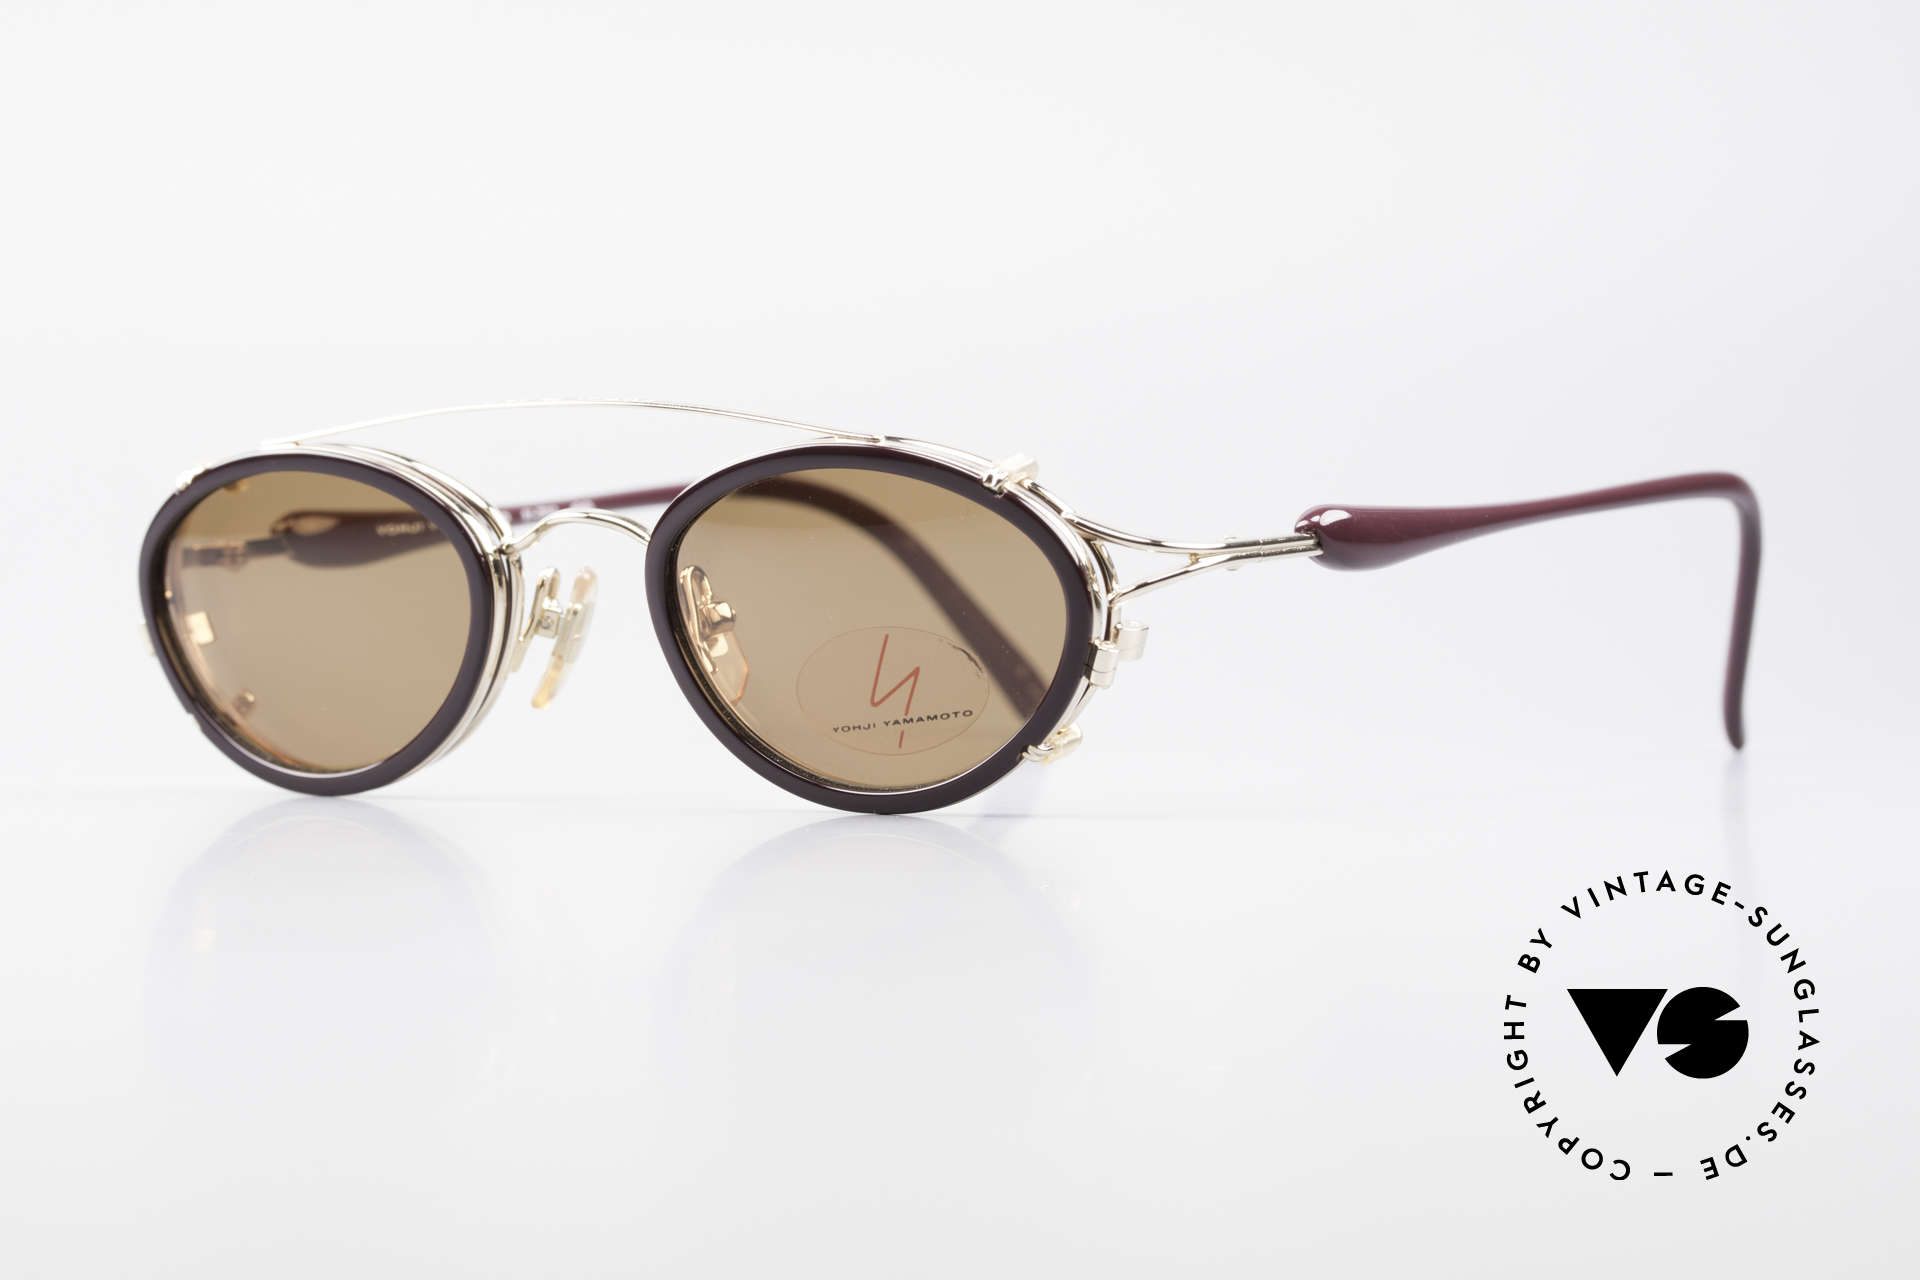 Yohji Yamamoto 51-7210 Clip-On 90's No Retro Frame, top-notch craftsmanship: GOLD PLATED metal frame, Made for Men and Women